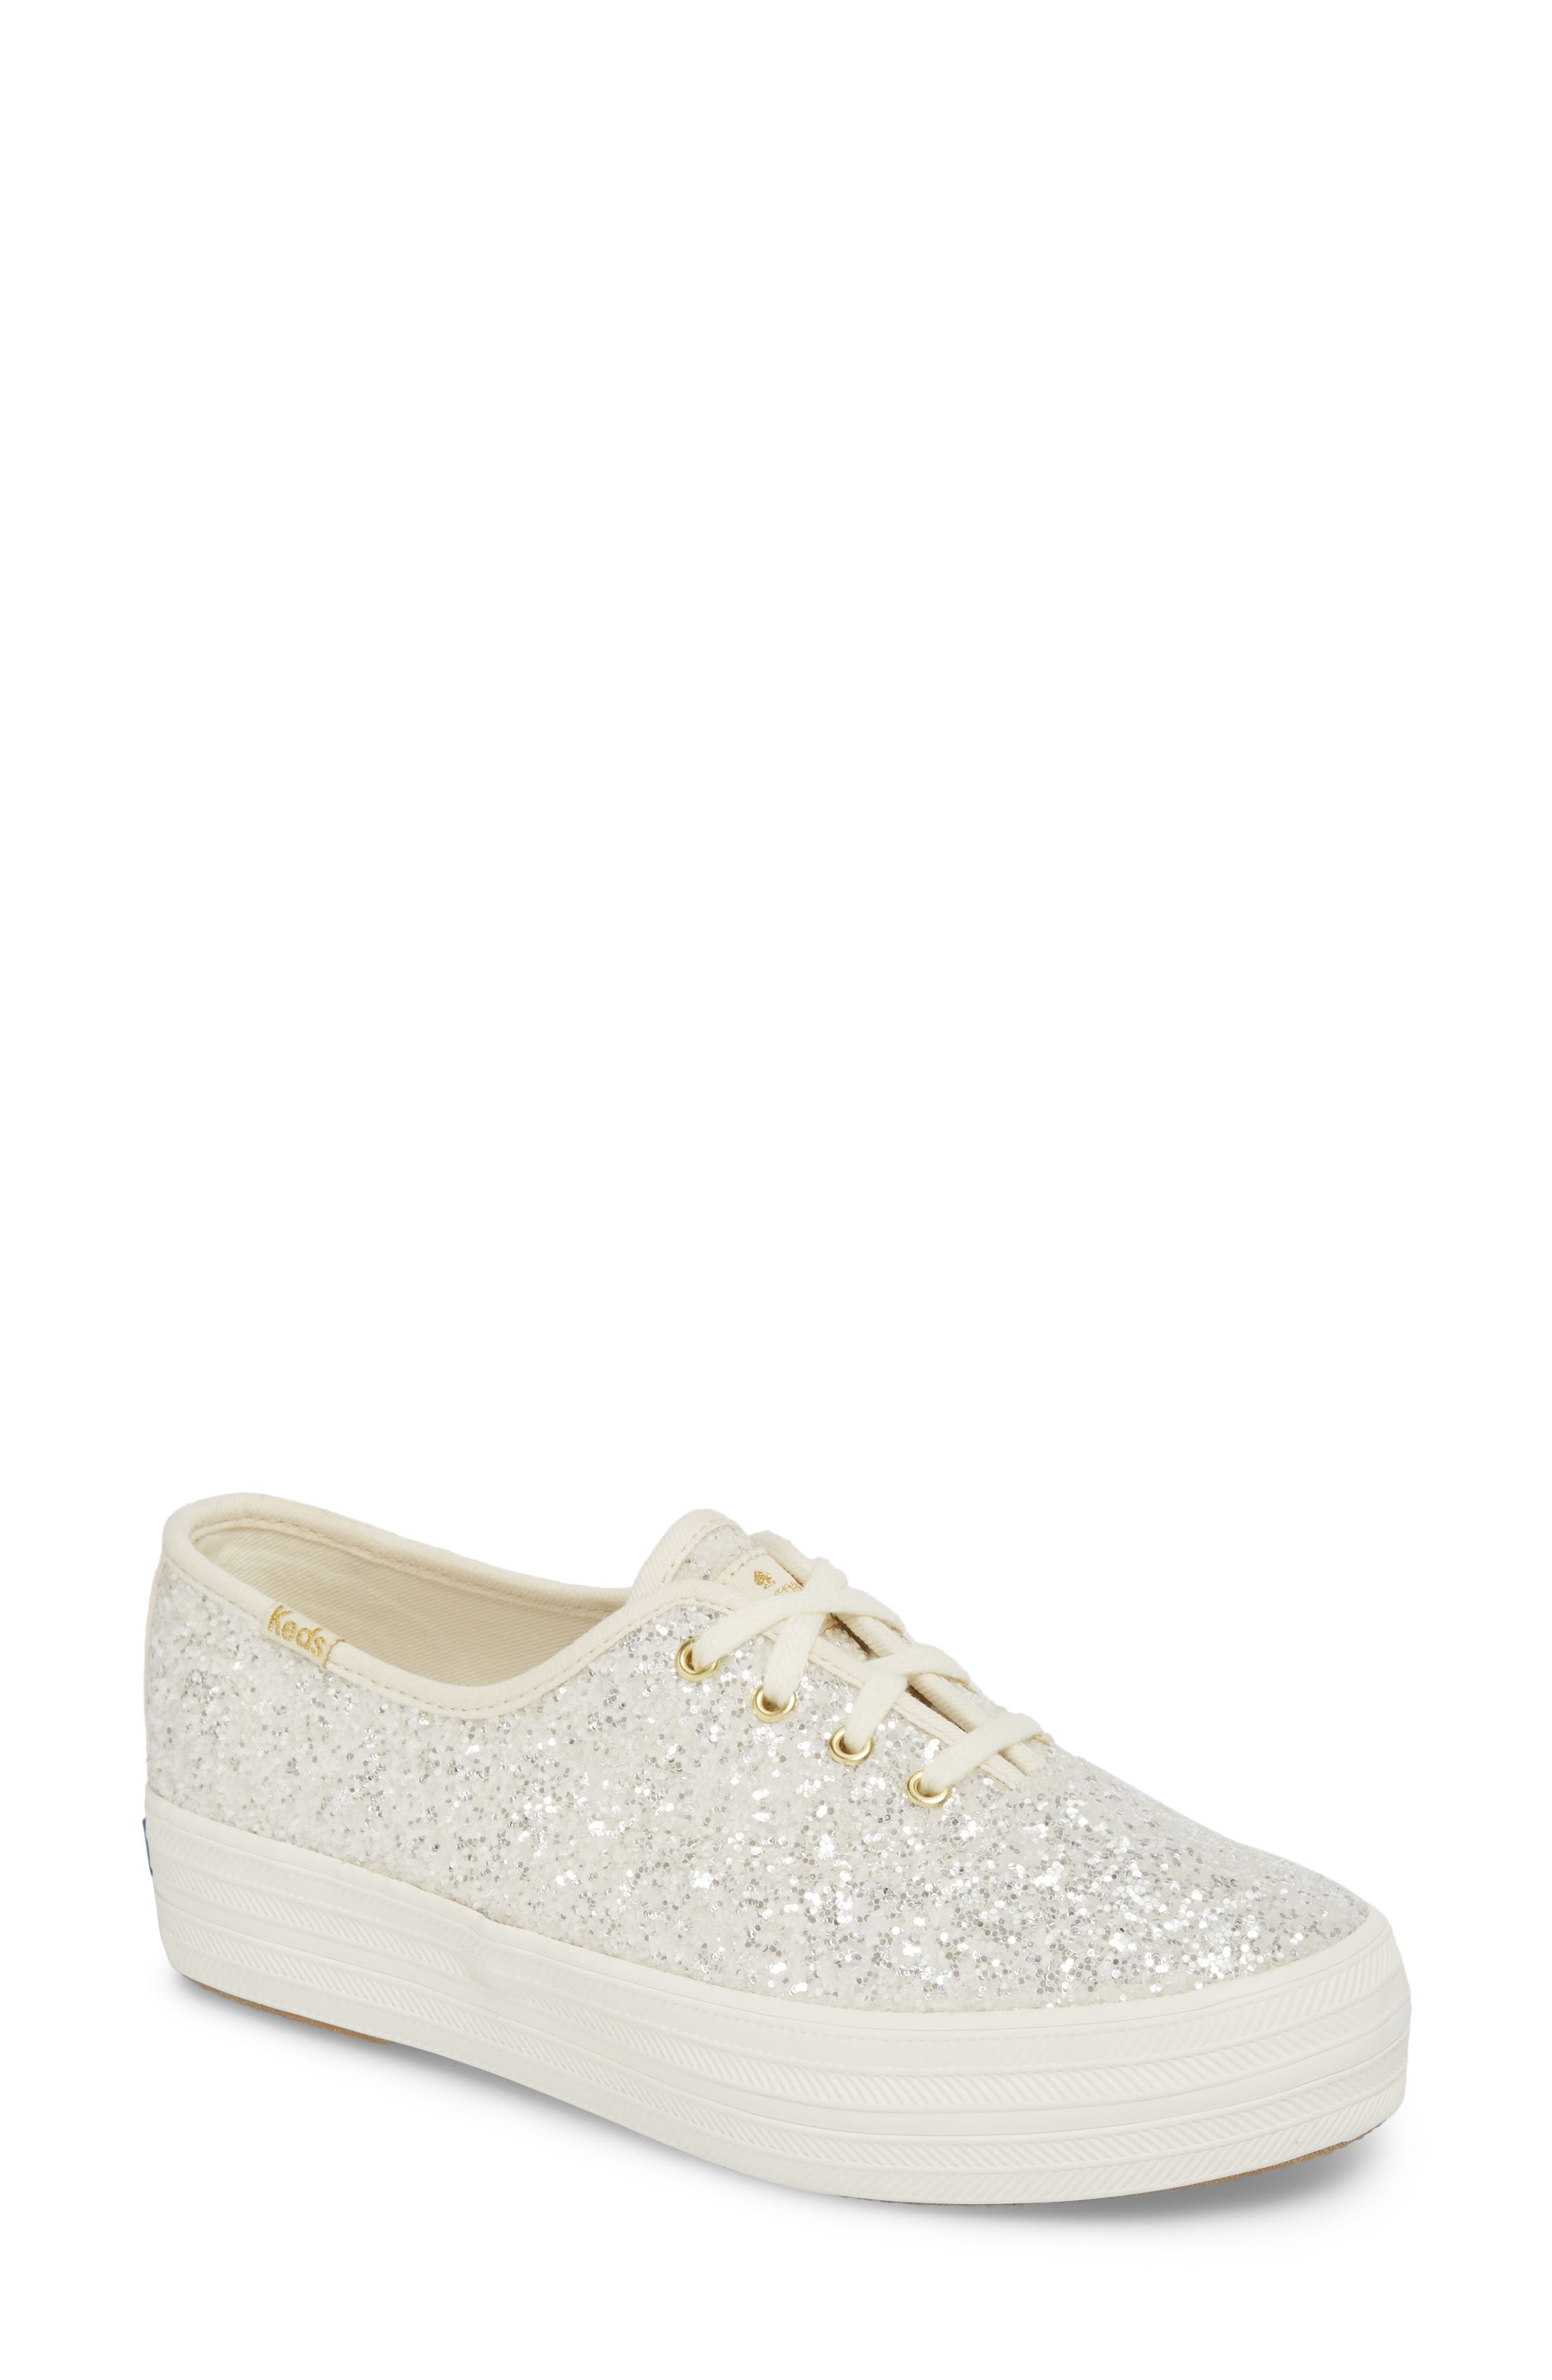 a330f13378850 Keds For Kate Spade New York Triple Decker Glitter Sneaker, Ivory